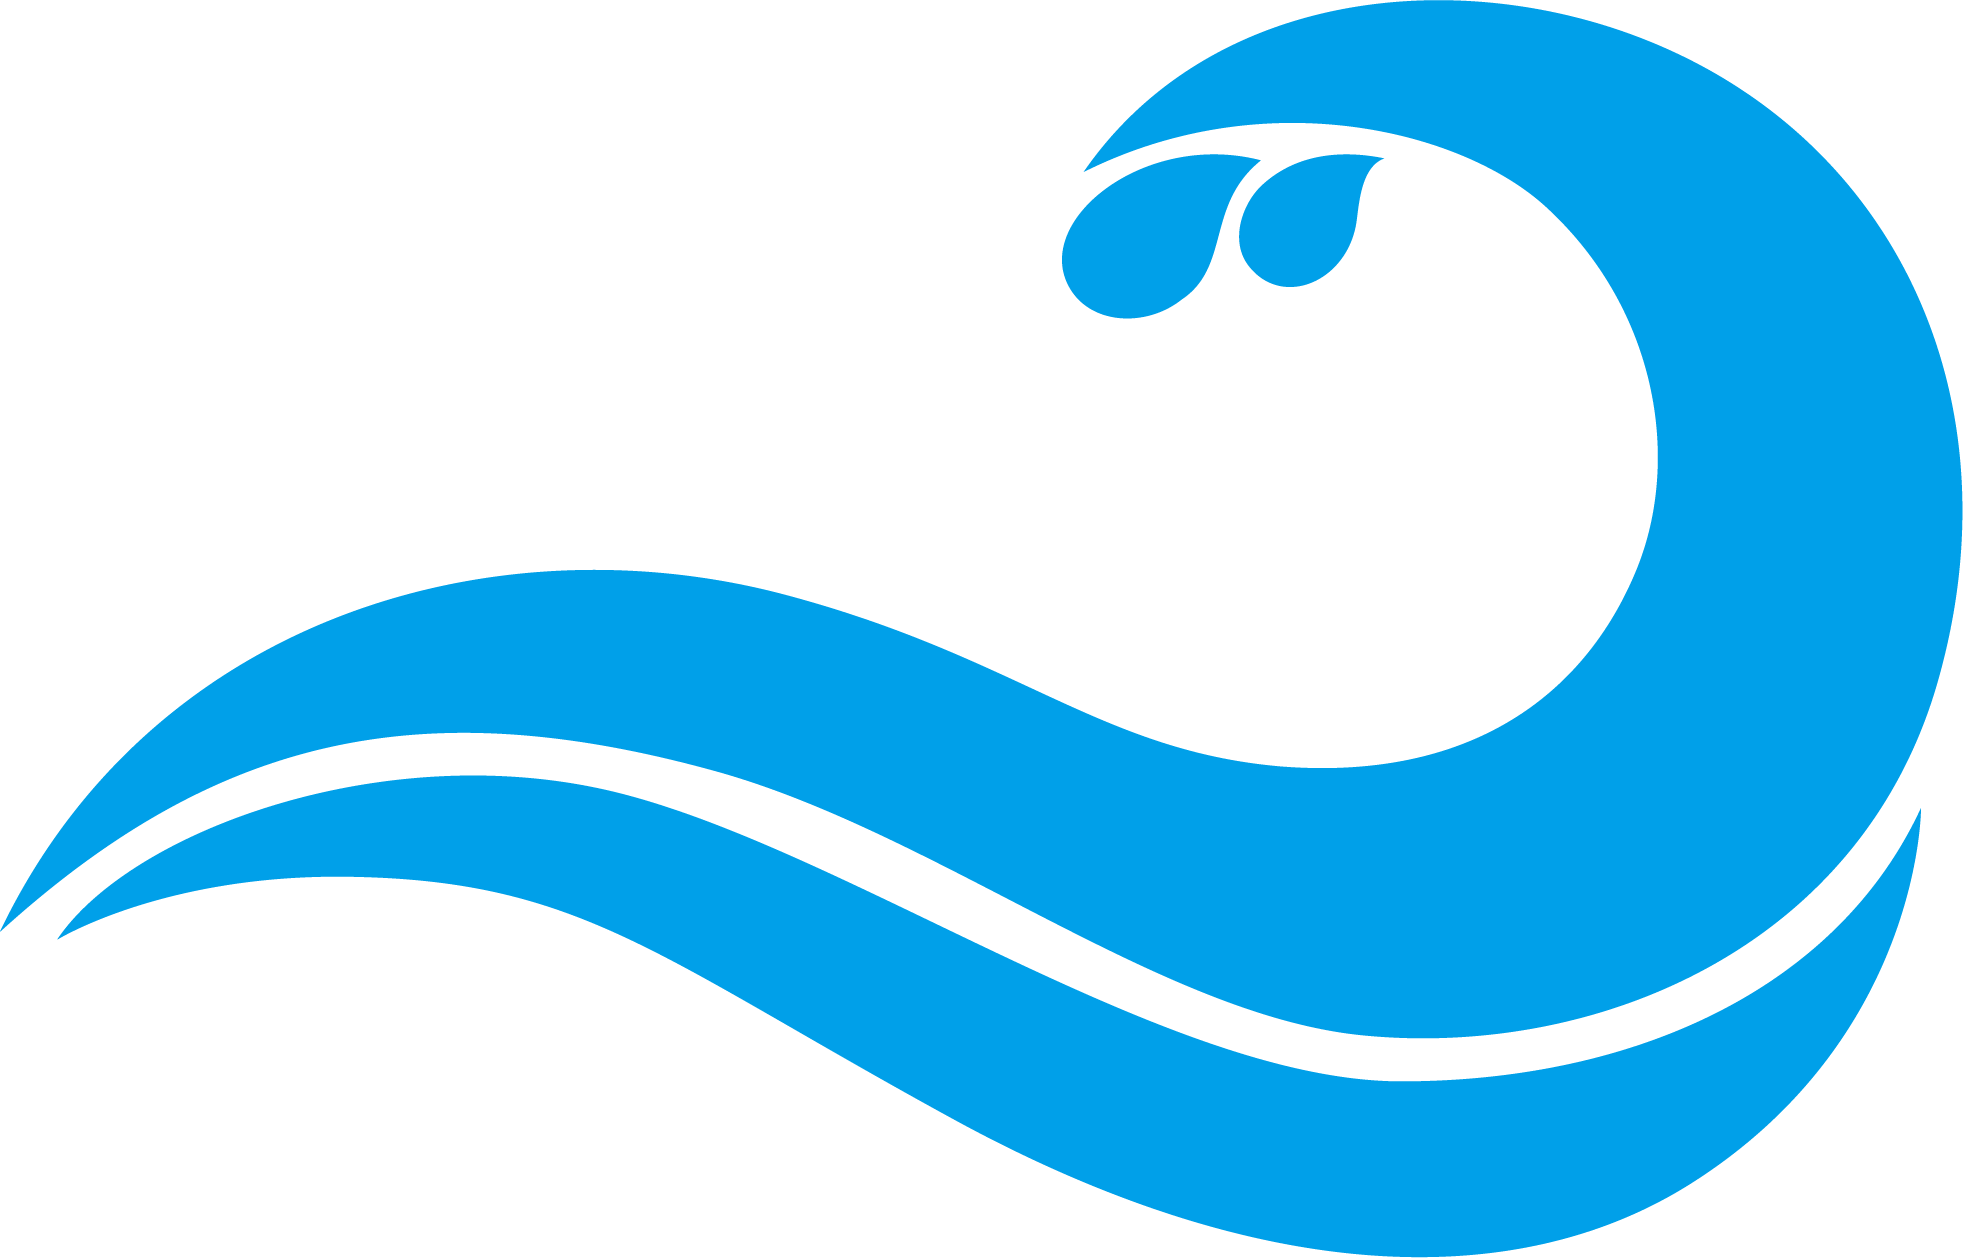 Waves clipart symbol. Blue wind wave drawing